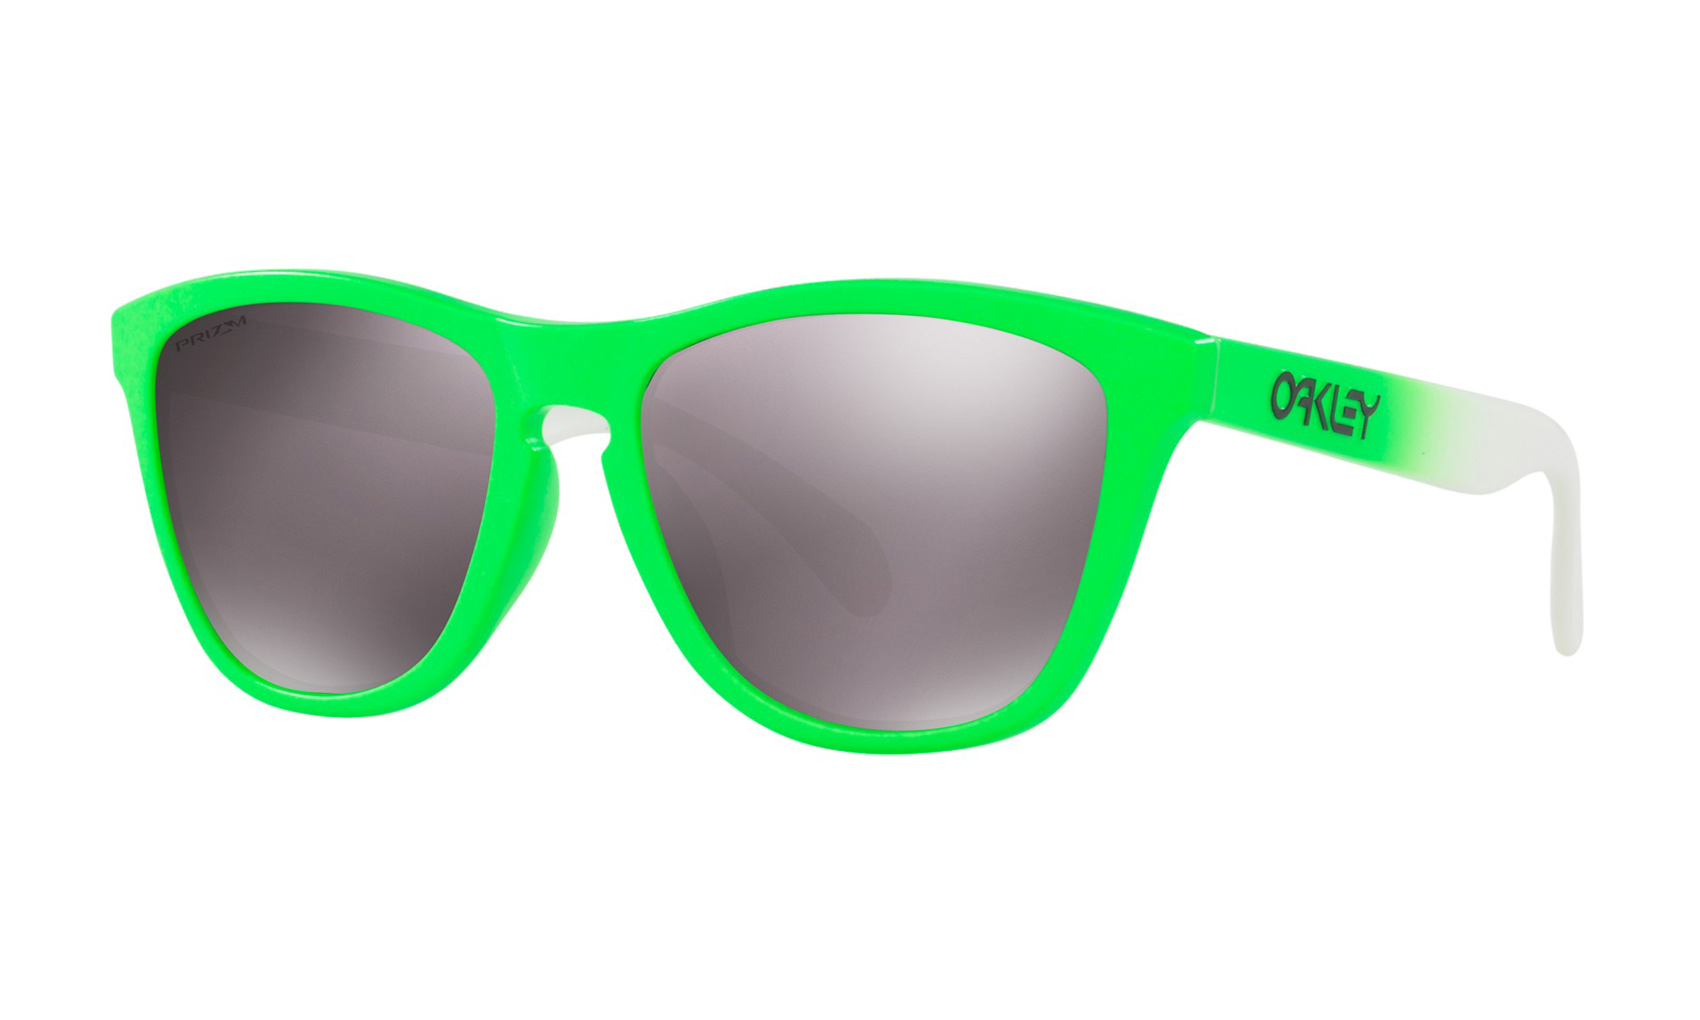 b5c3ab2dff Sentinel Oakley Sunglasses - Frogskins - Green Fade